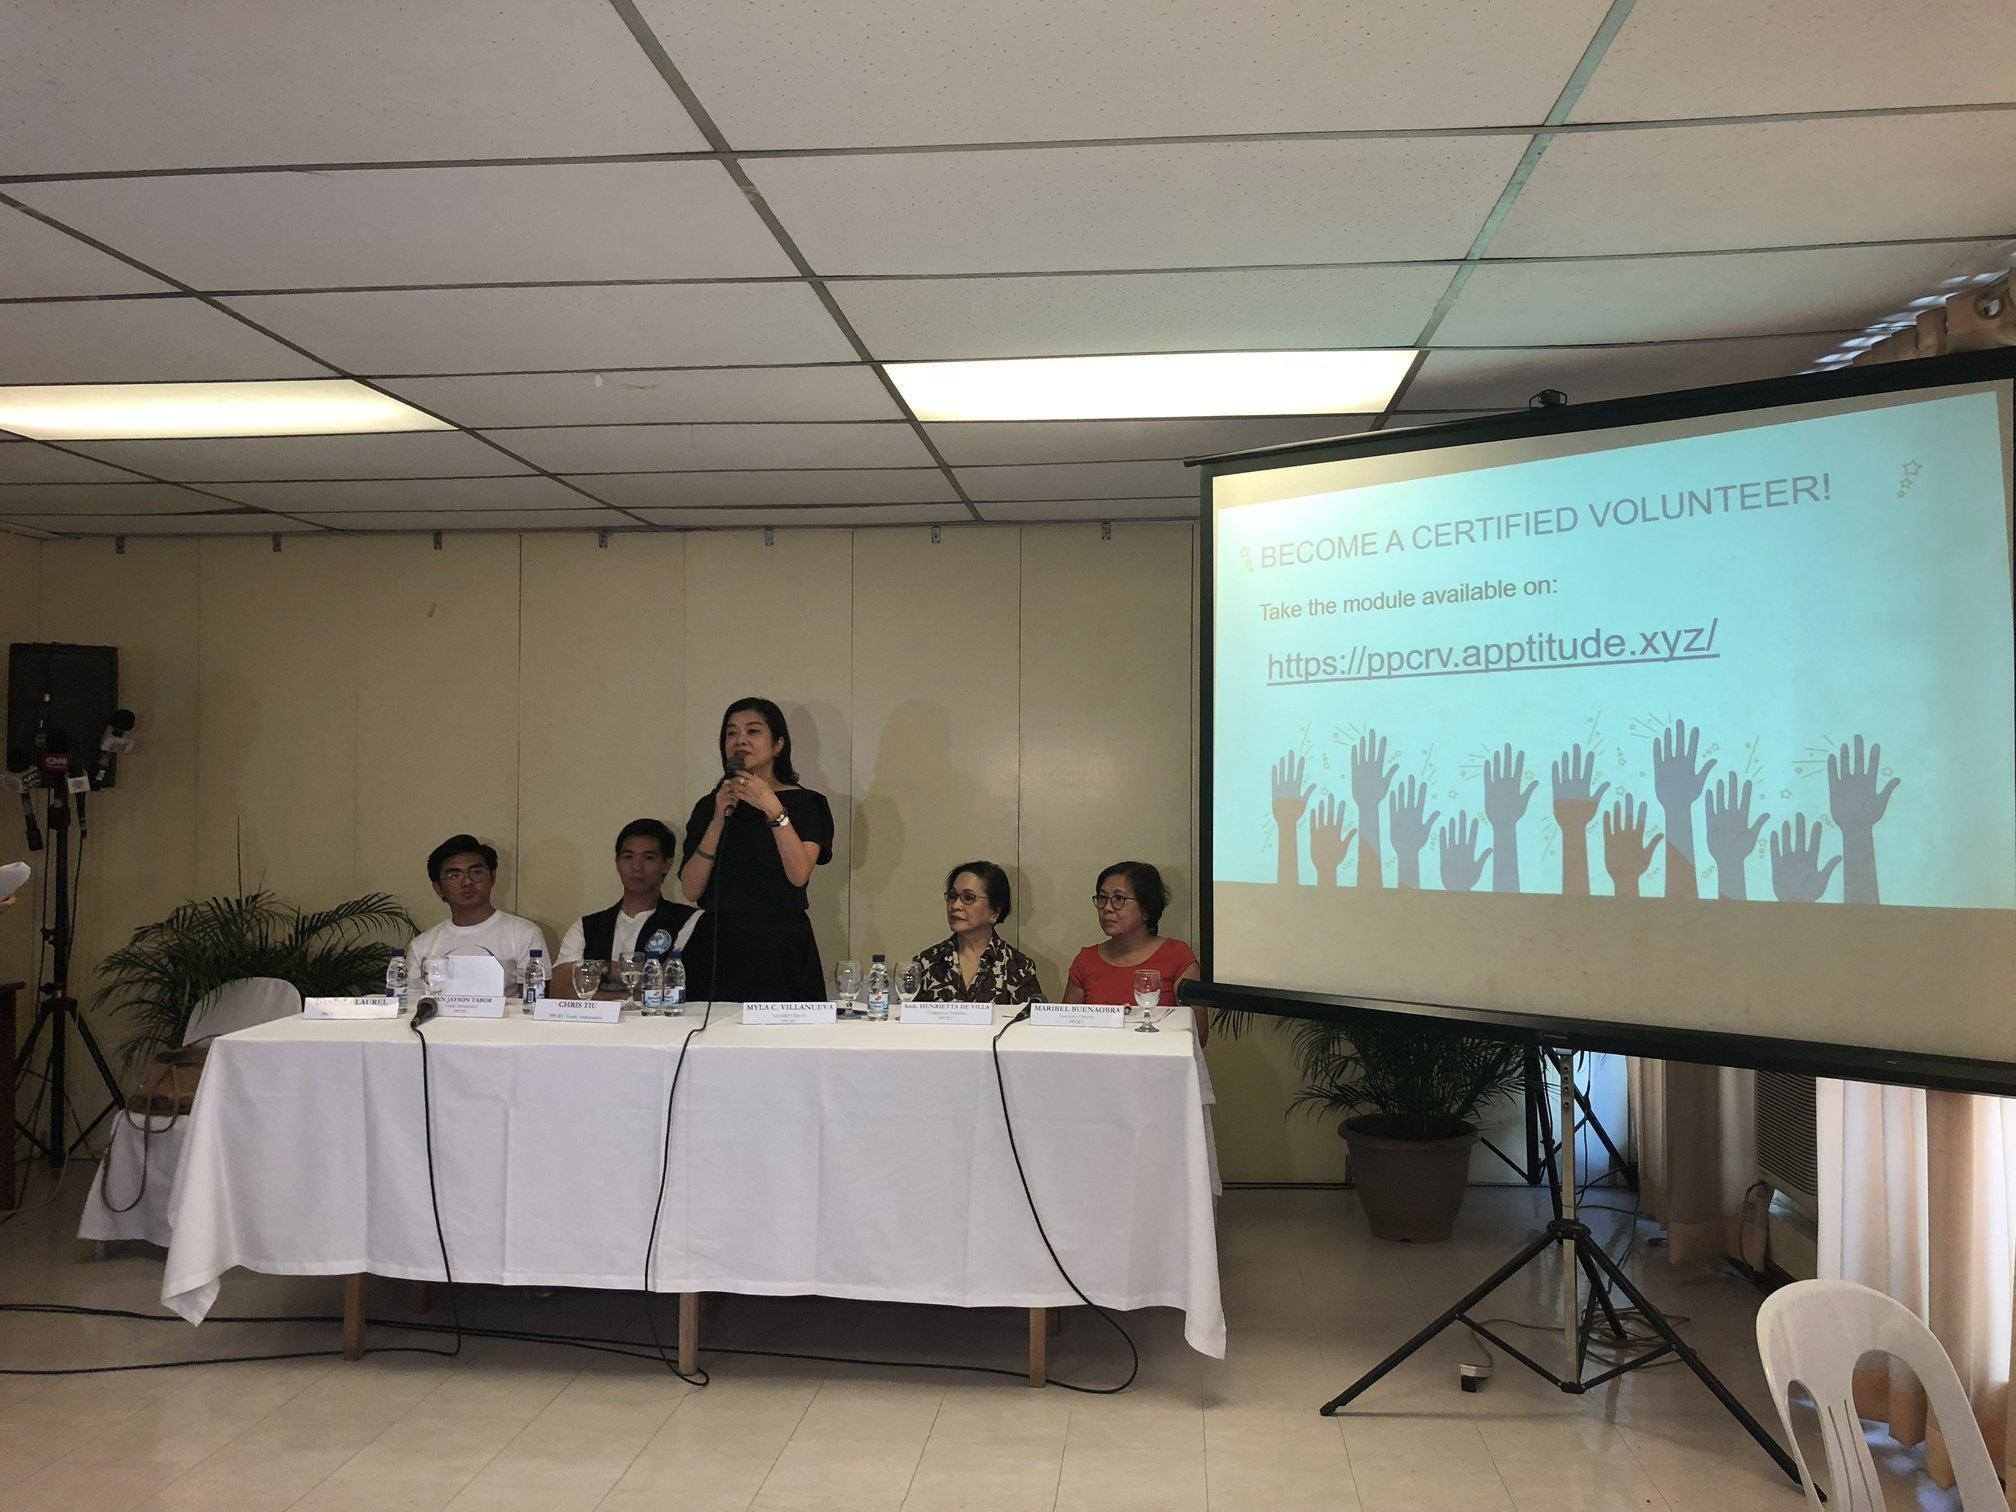 INTRODUCTION. PPCRV National Chairperson Myla Villanueva talks during their youth ambassador launch on March 20 at the Pope Pius XII Catholic Center. Photo by Samantha Bagayas/Rappler